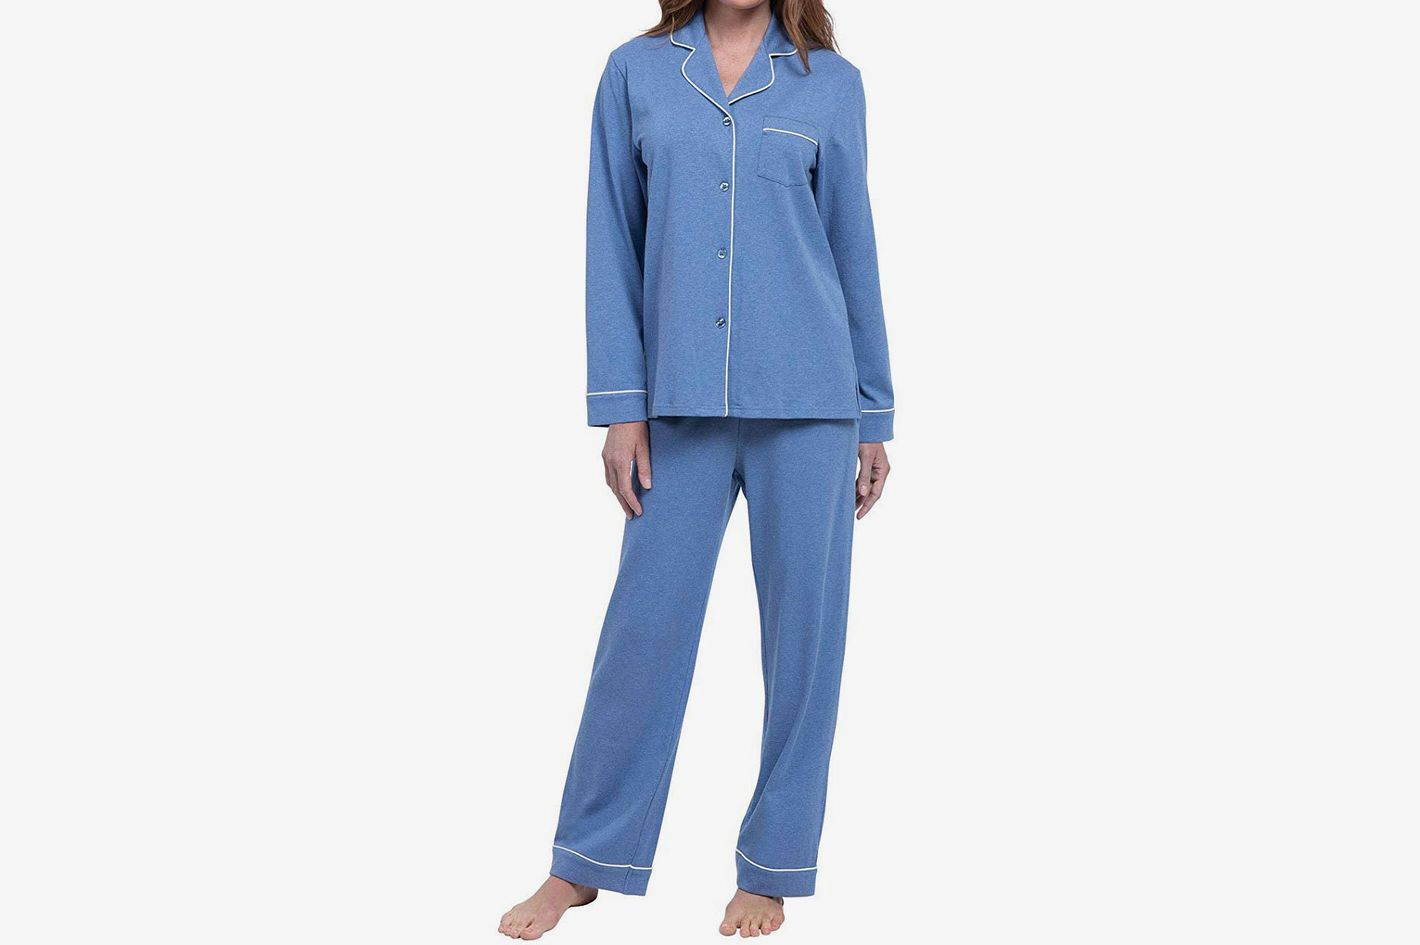 2aed8d5d5b93 PajamaGram Pajamas for Women - Cotton Jersey Womens Pajamas